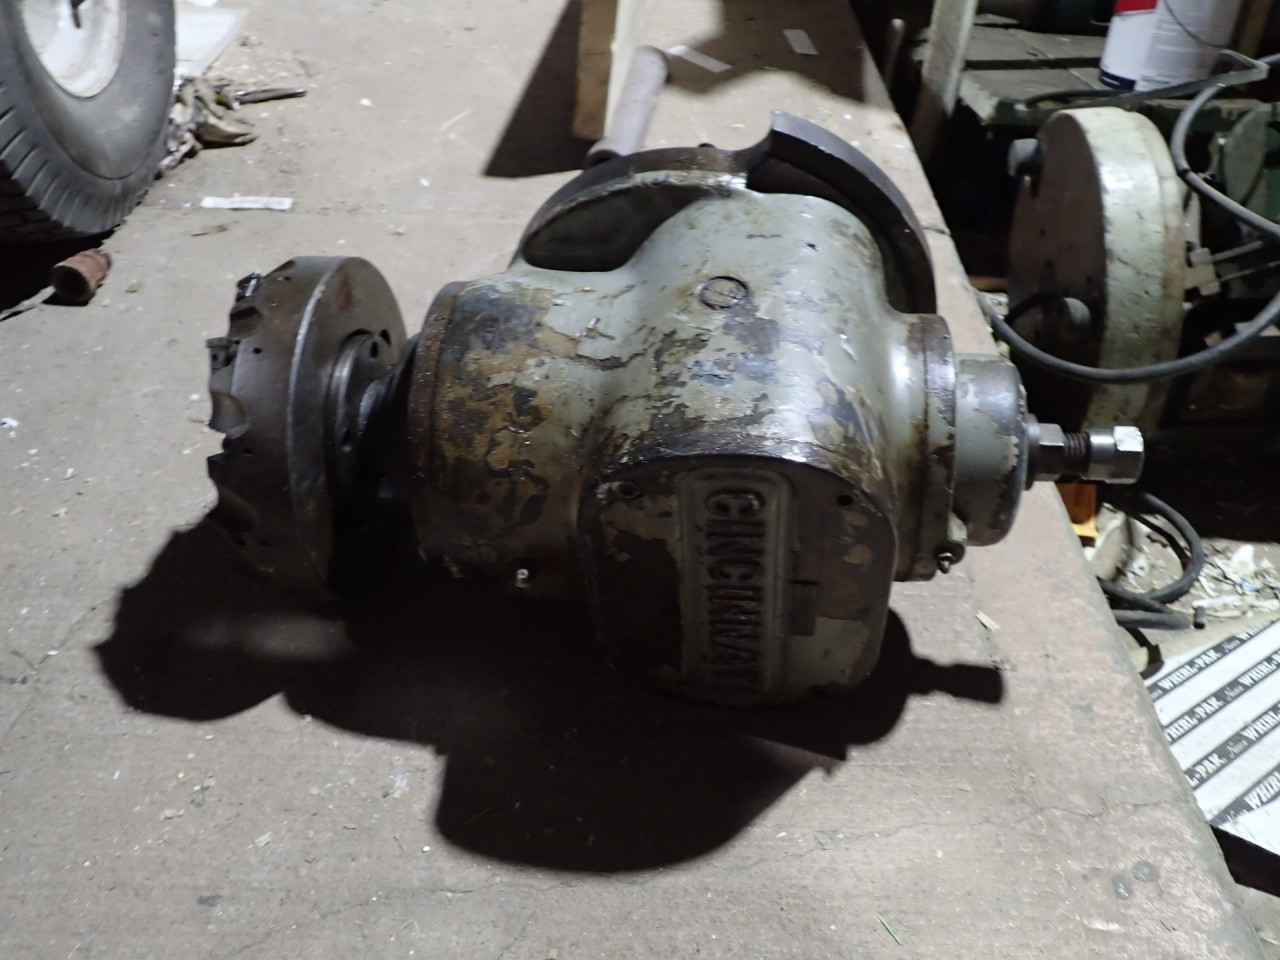 Cincinnati Right Angle Vertical Mill Milling Head for Horizontal Mill, Used Good